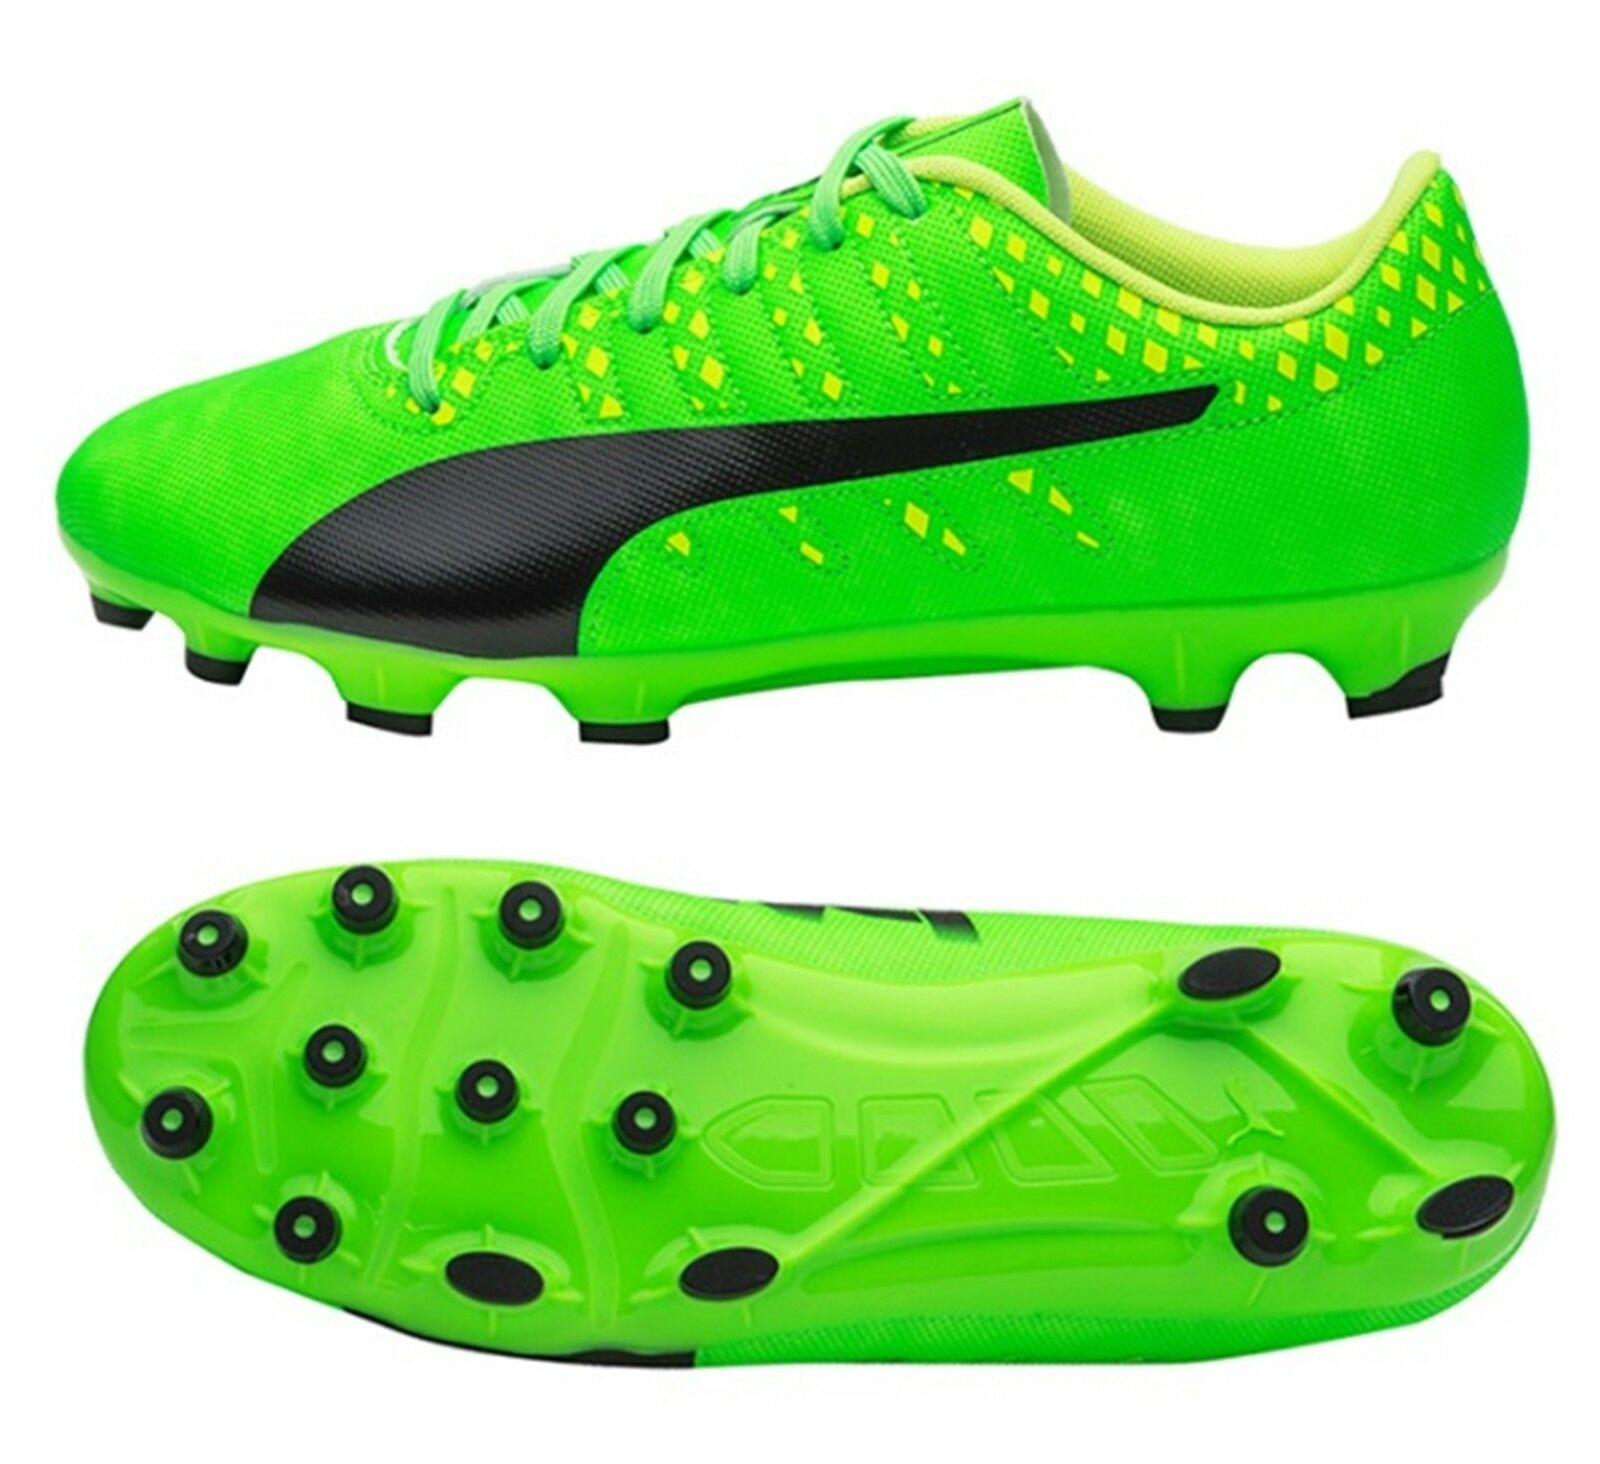 PUMA Men evoPOWER Vigor 4 AG Cleats Green Soccer Football shoes Spike 103964-01